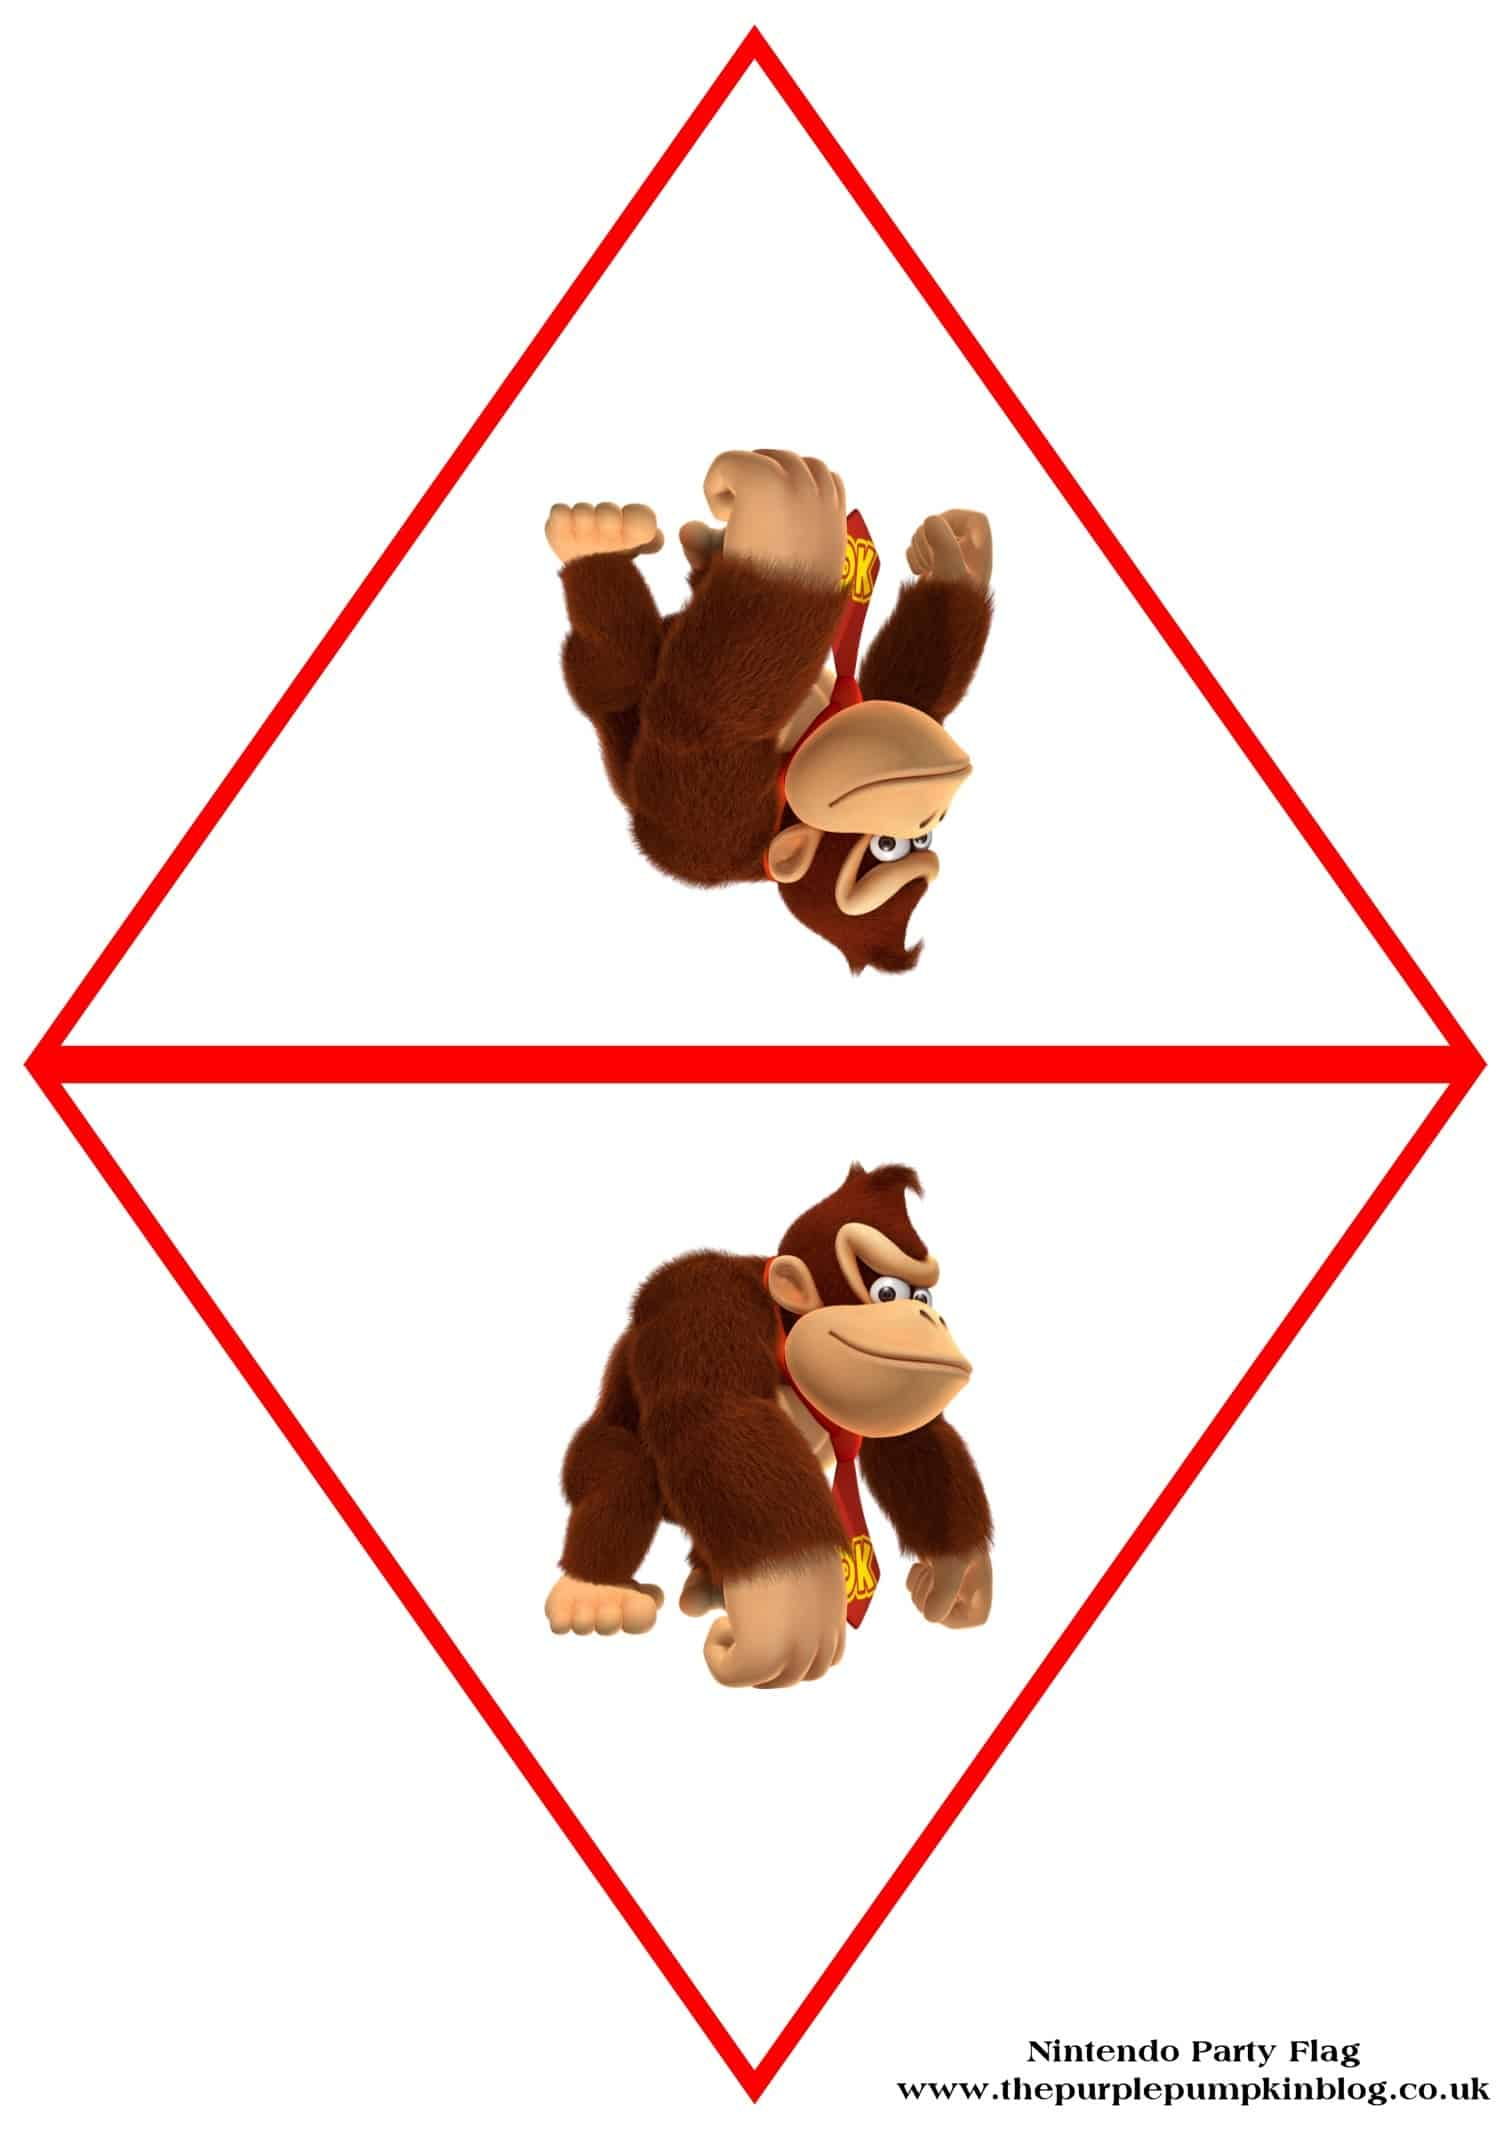 nintendo-party-flag-donkey-kong